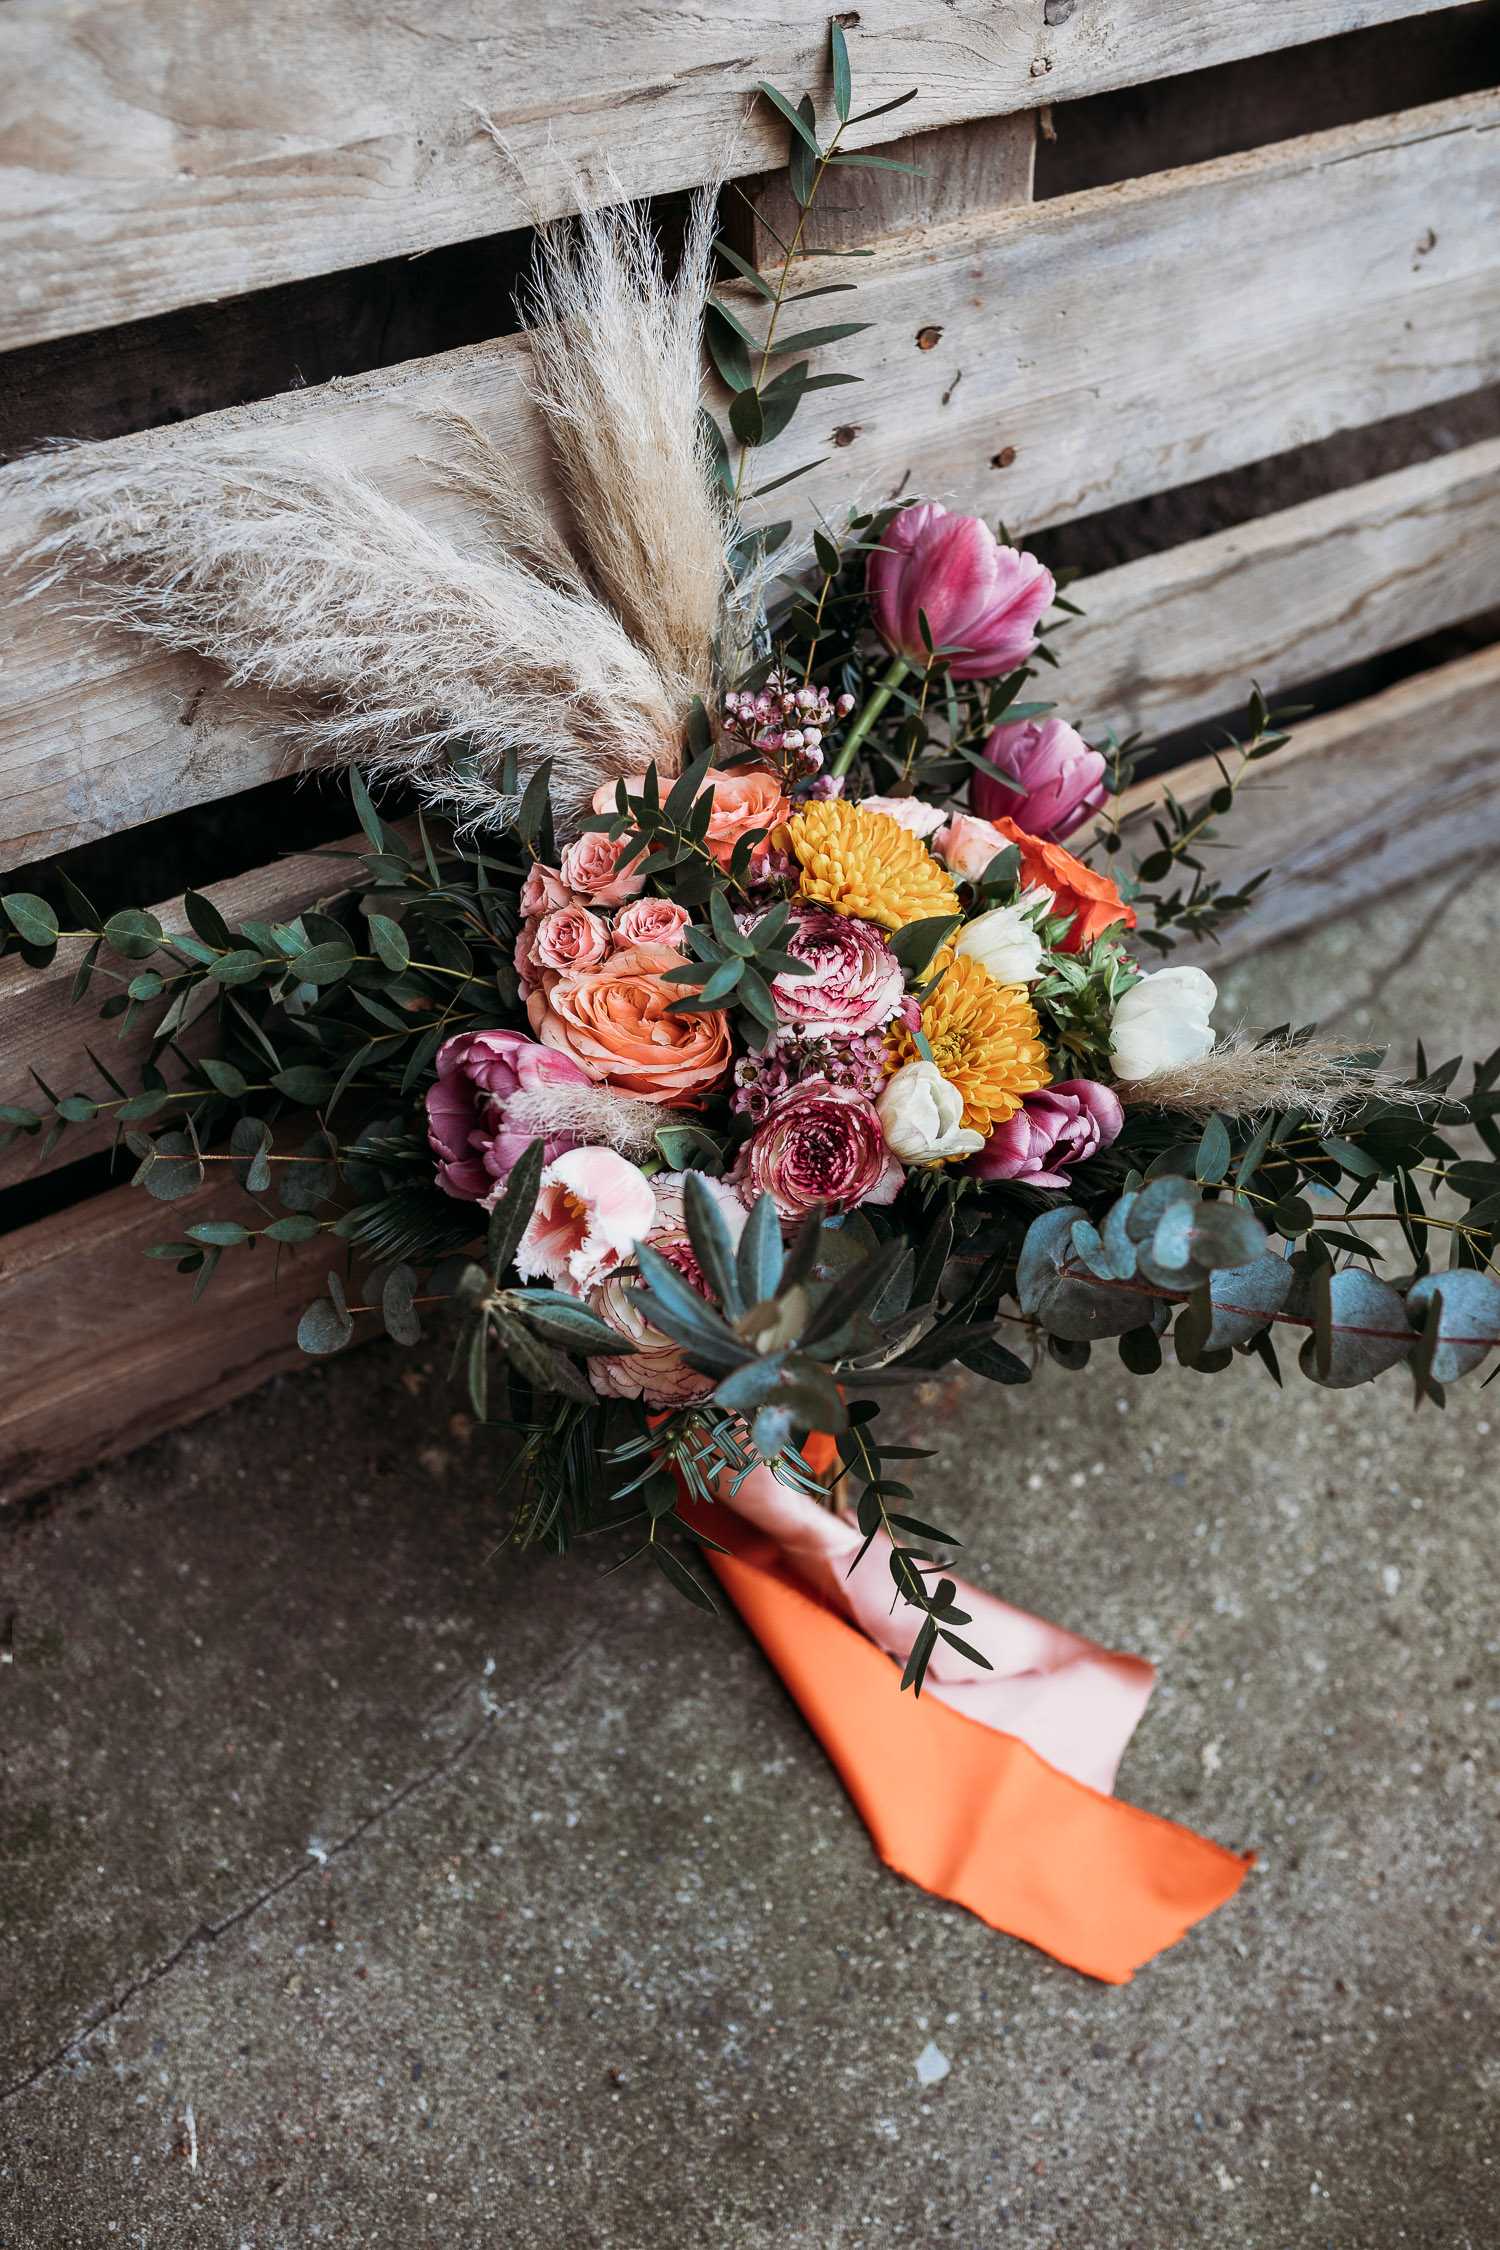 Orange fuxia bouquet with eucalyptus, roses and plumes, made by Sposami Oggi fort Tenimento il Castello